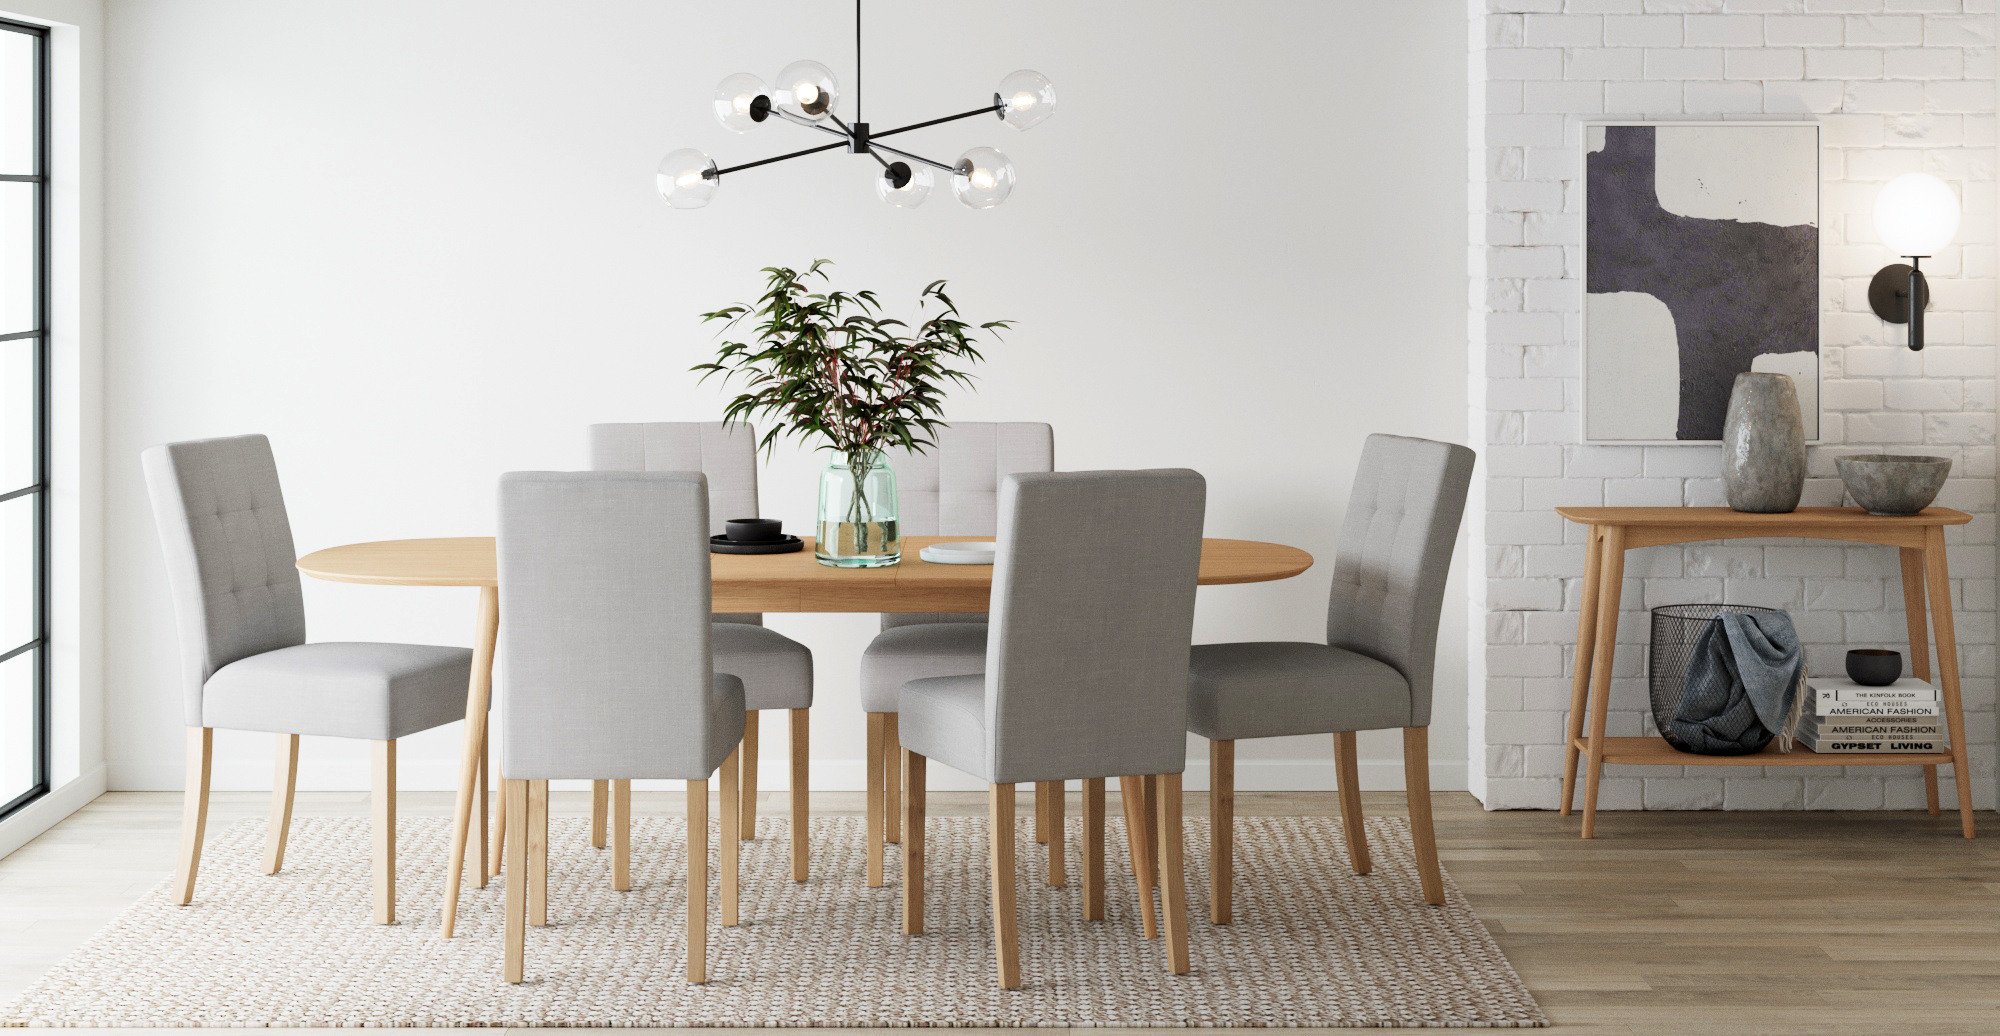 Brosa Jessica Set of 2 Dining Chairs styled in classic traditional dining room